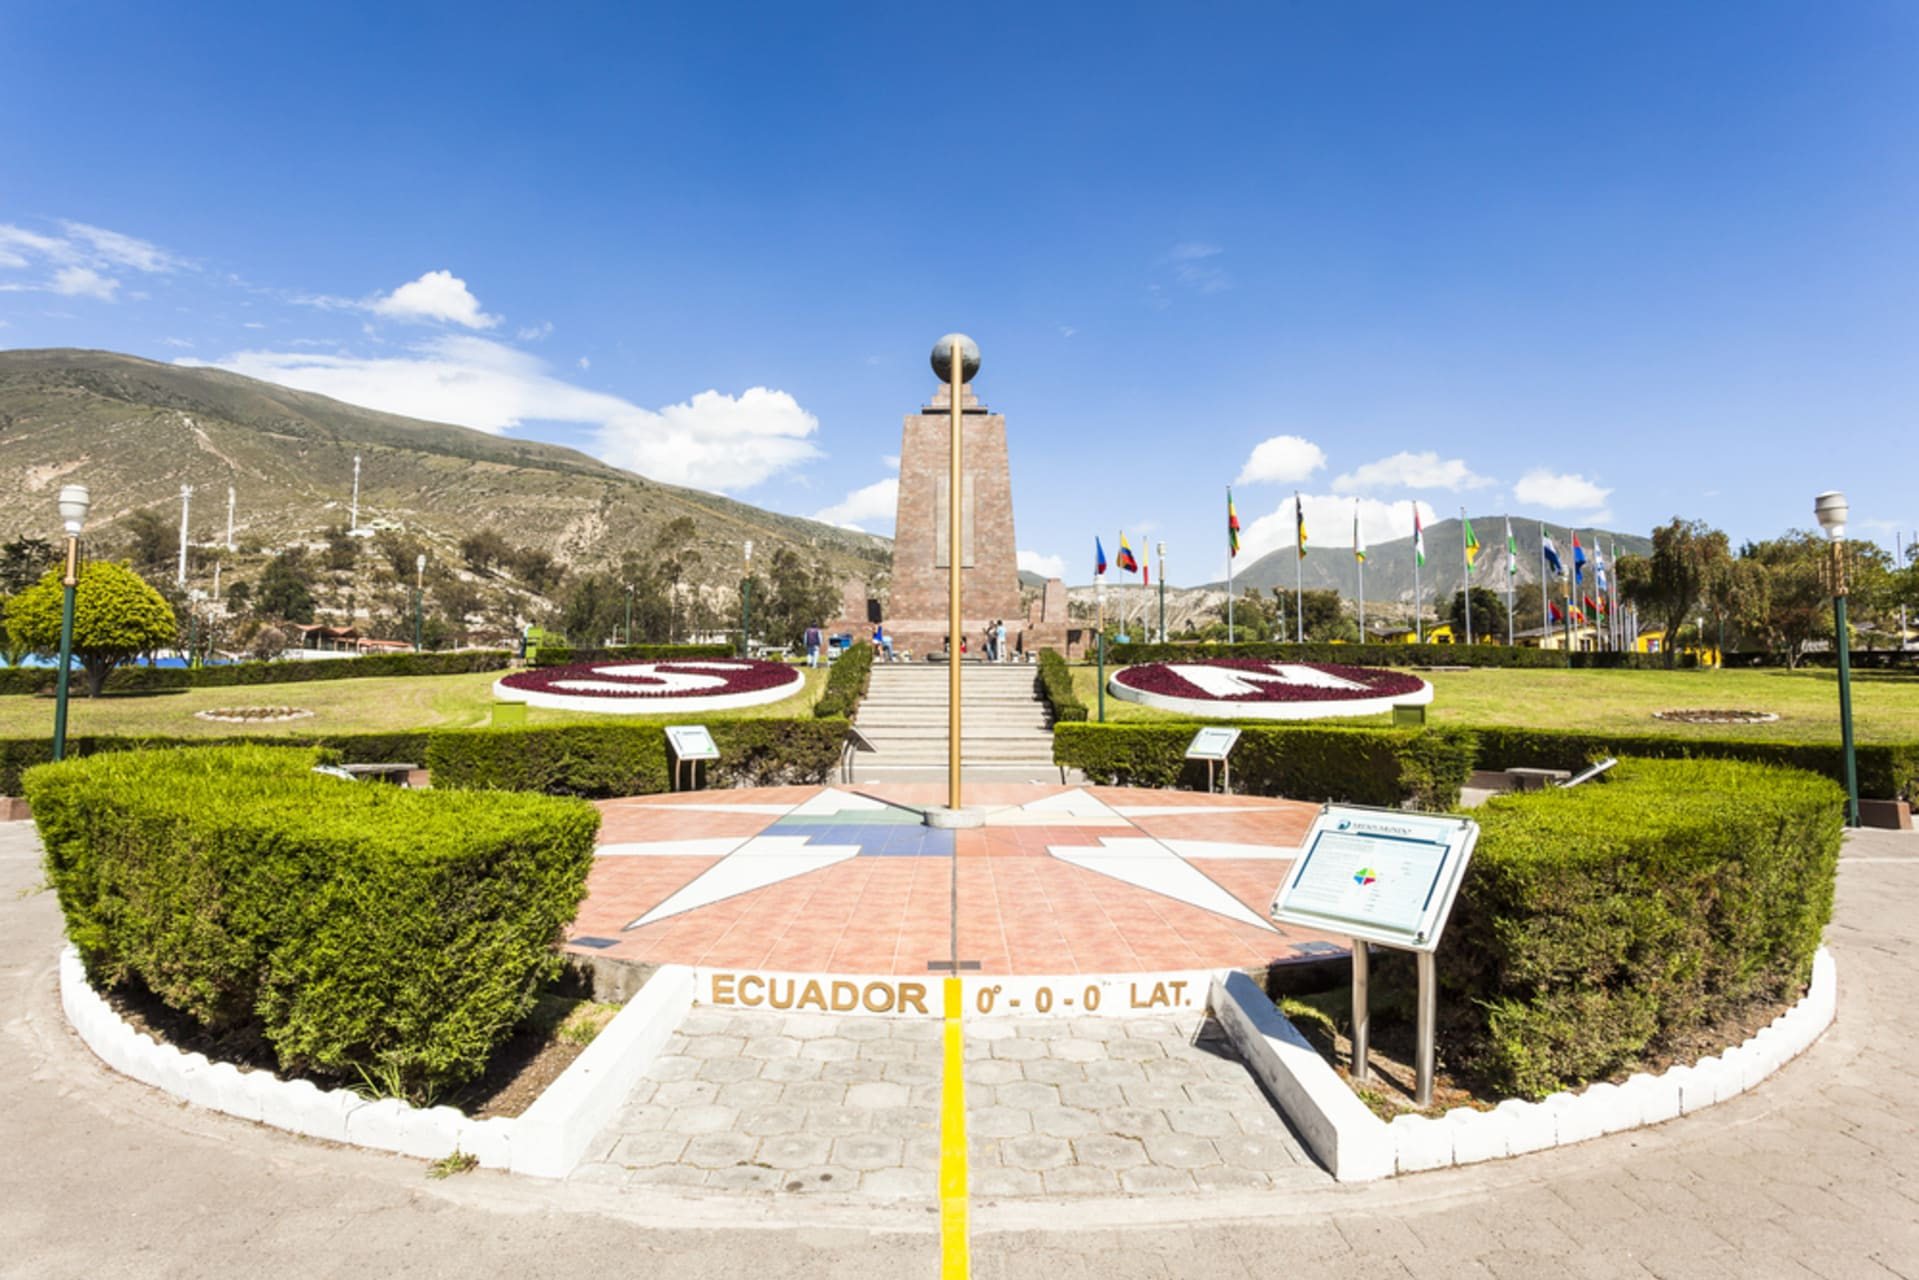 Quito - Journey to the Equator - The Middle of the World: Latitude 0